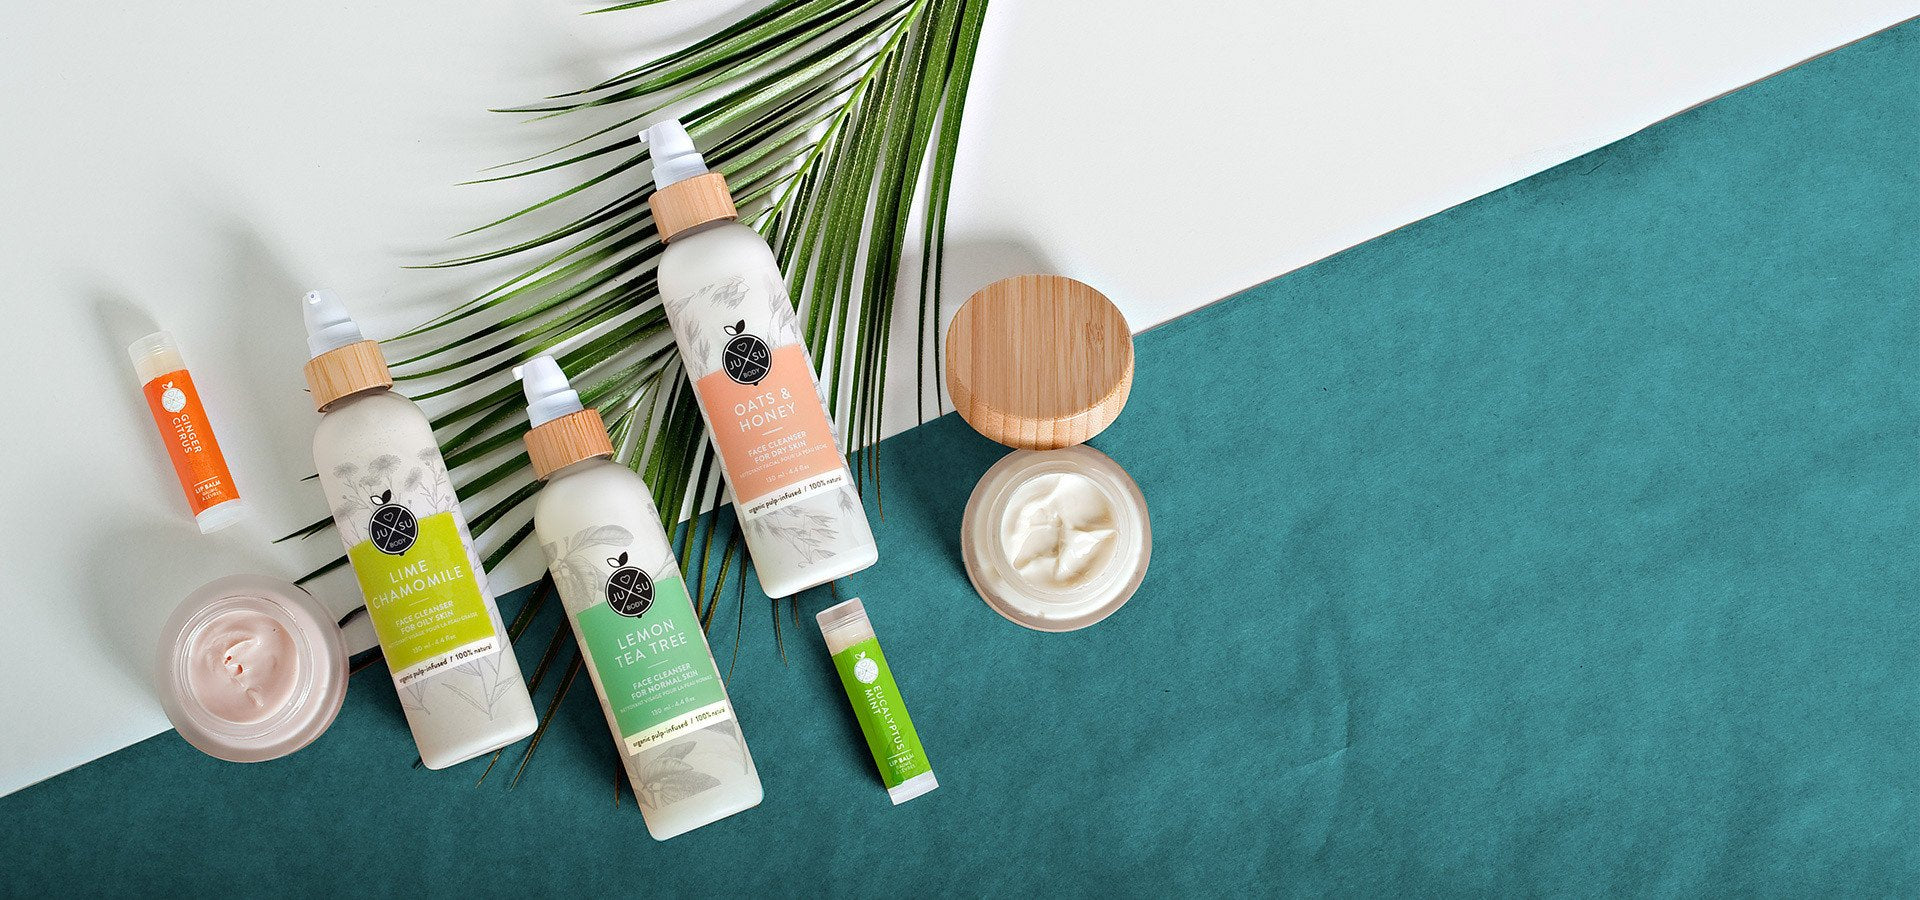 Jusu Body Products